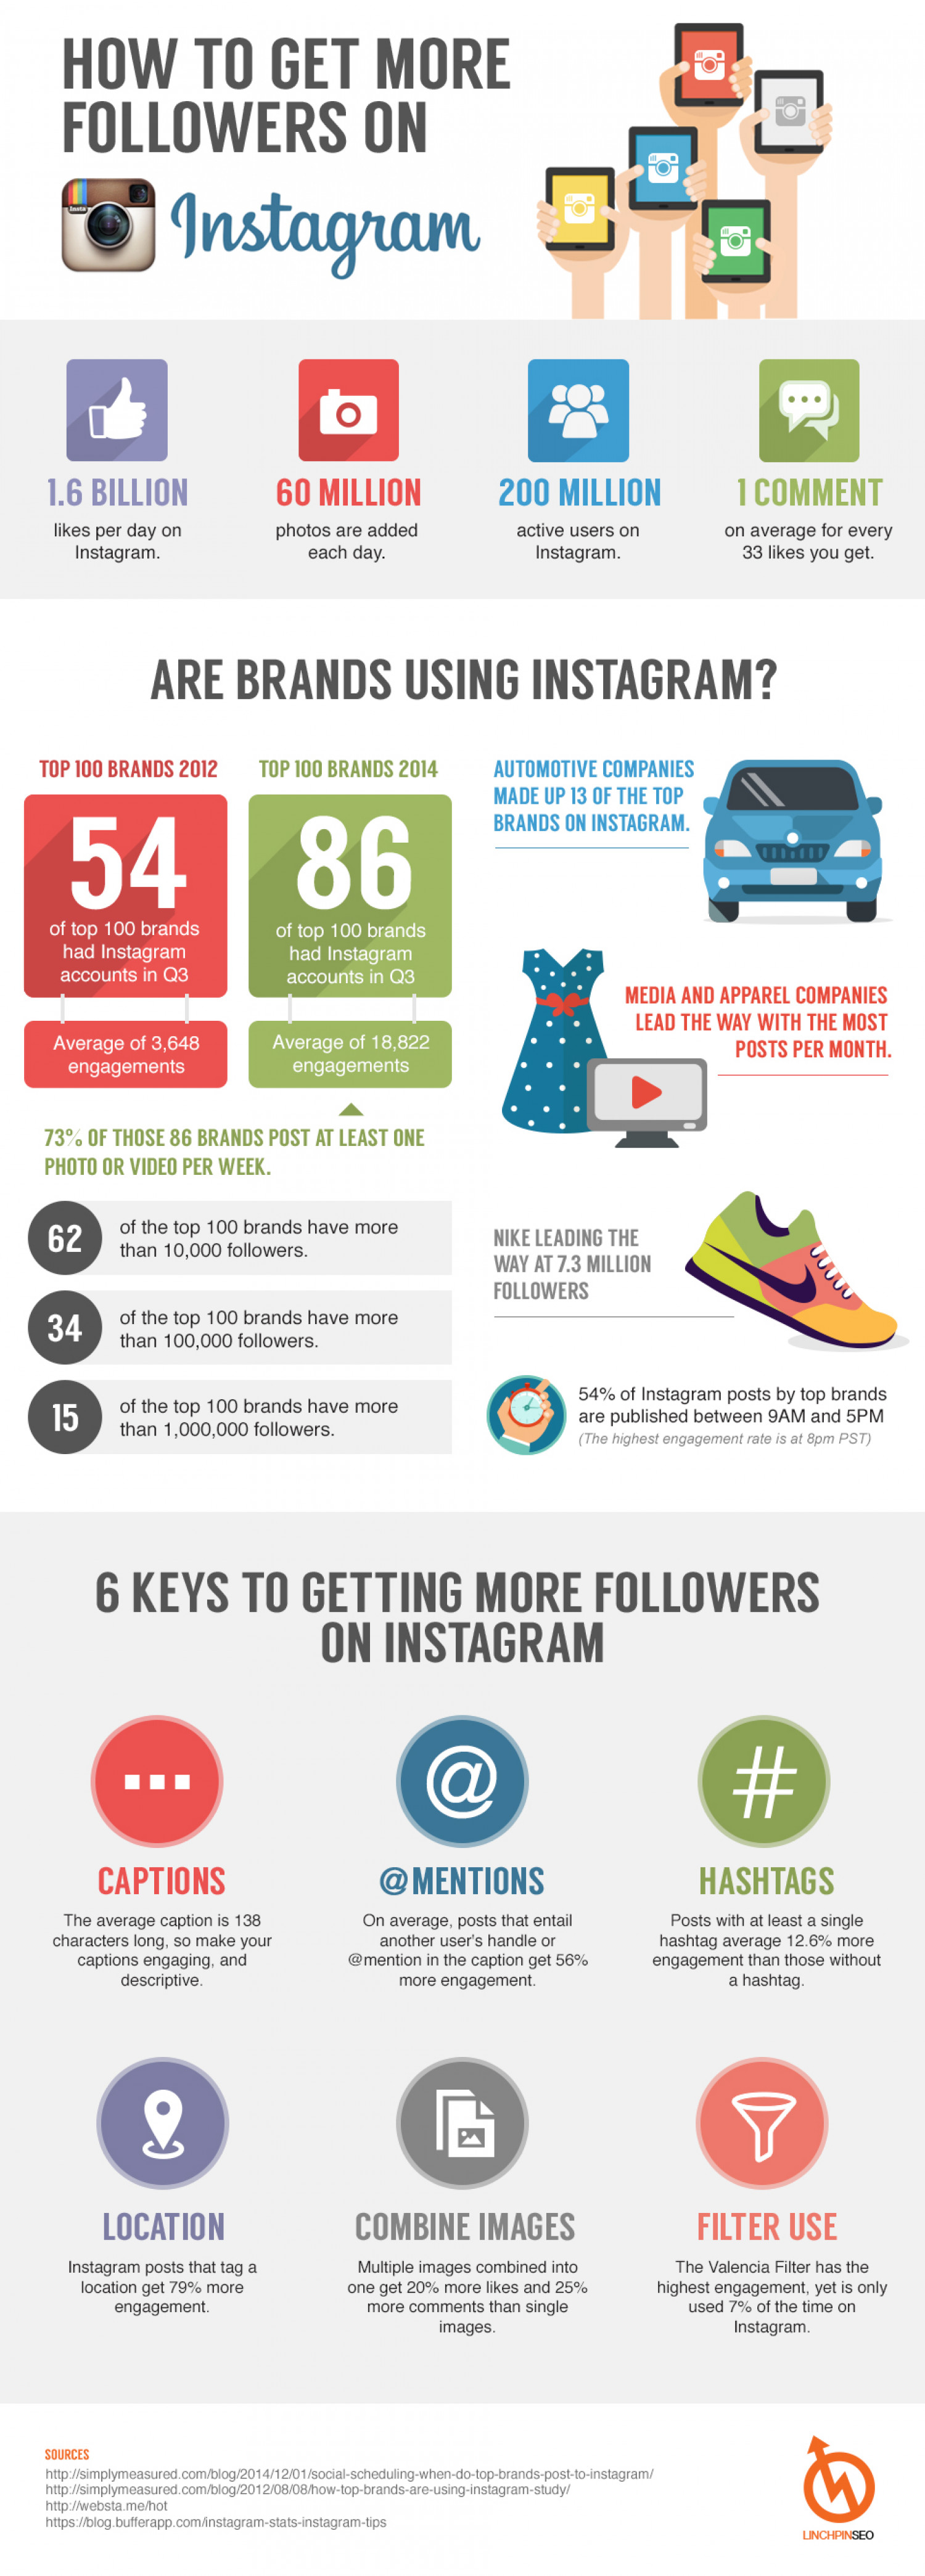 How to get more followers on Instagram Infographic